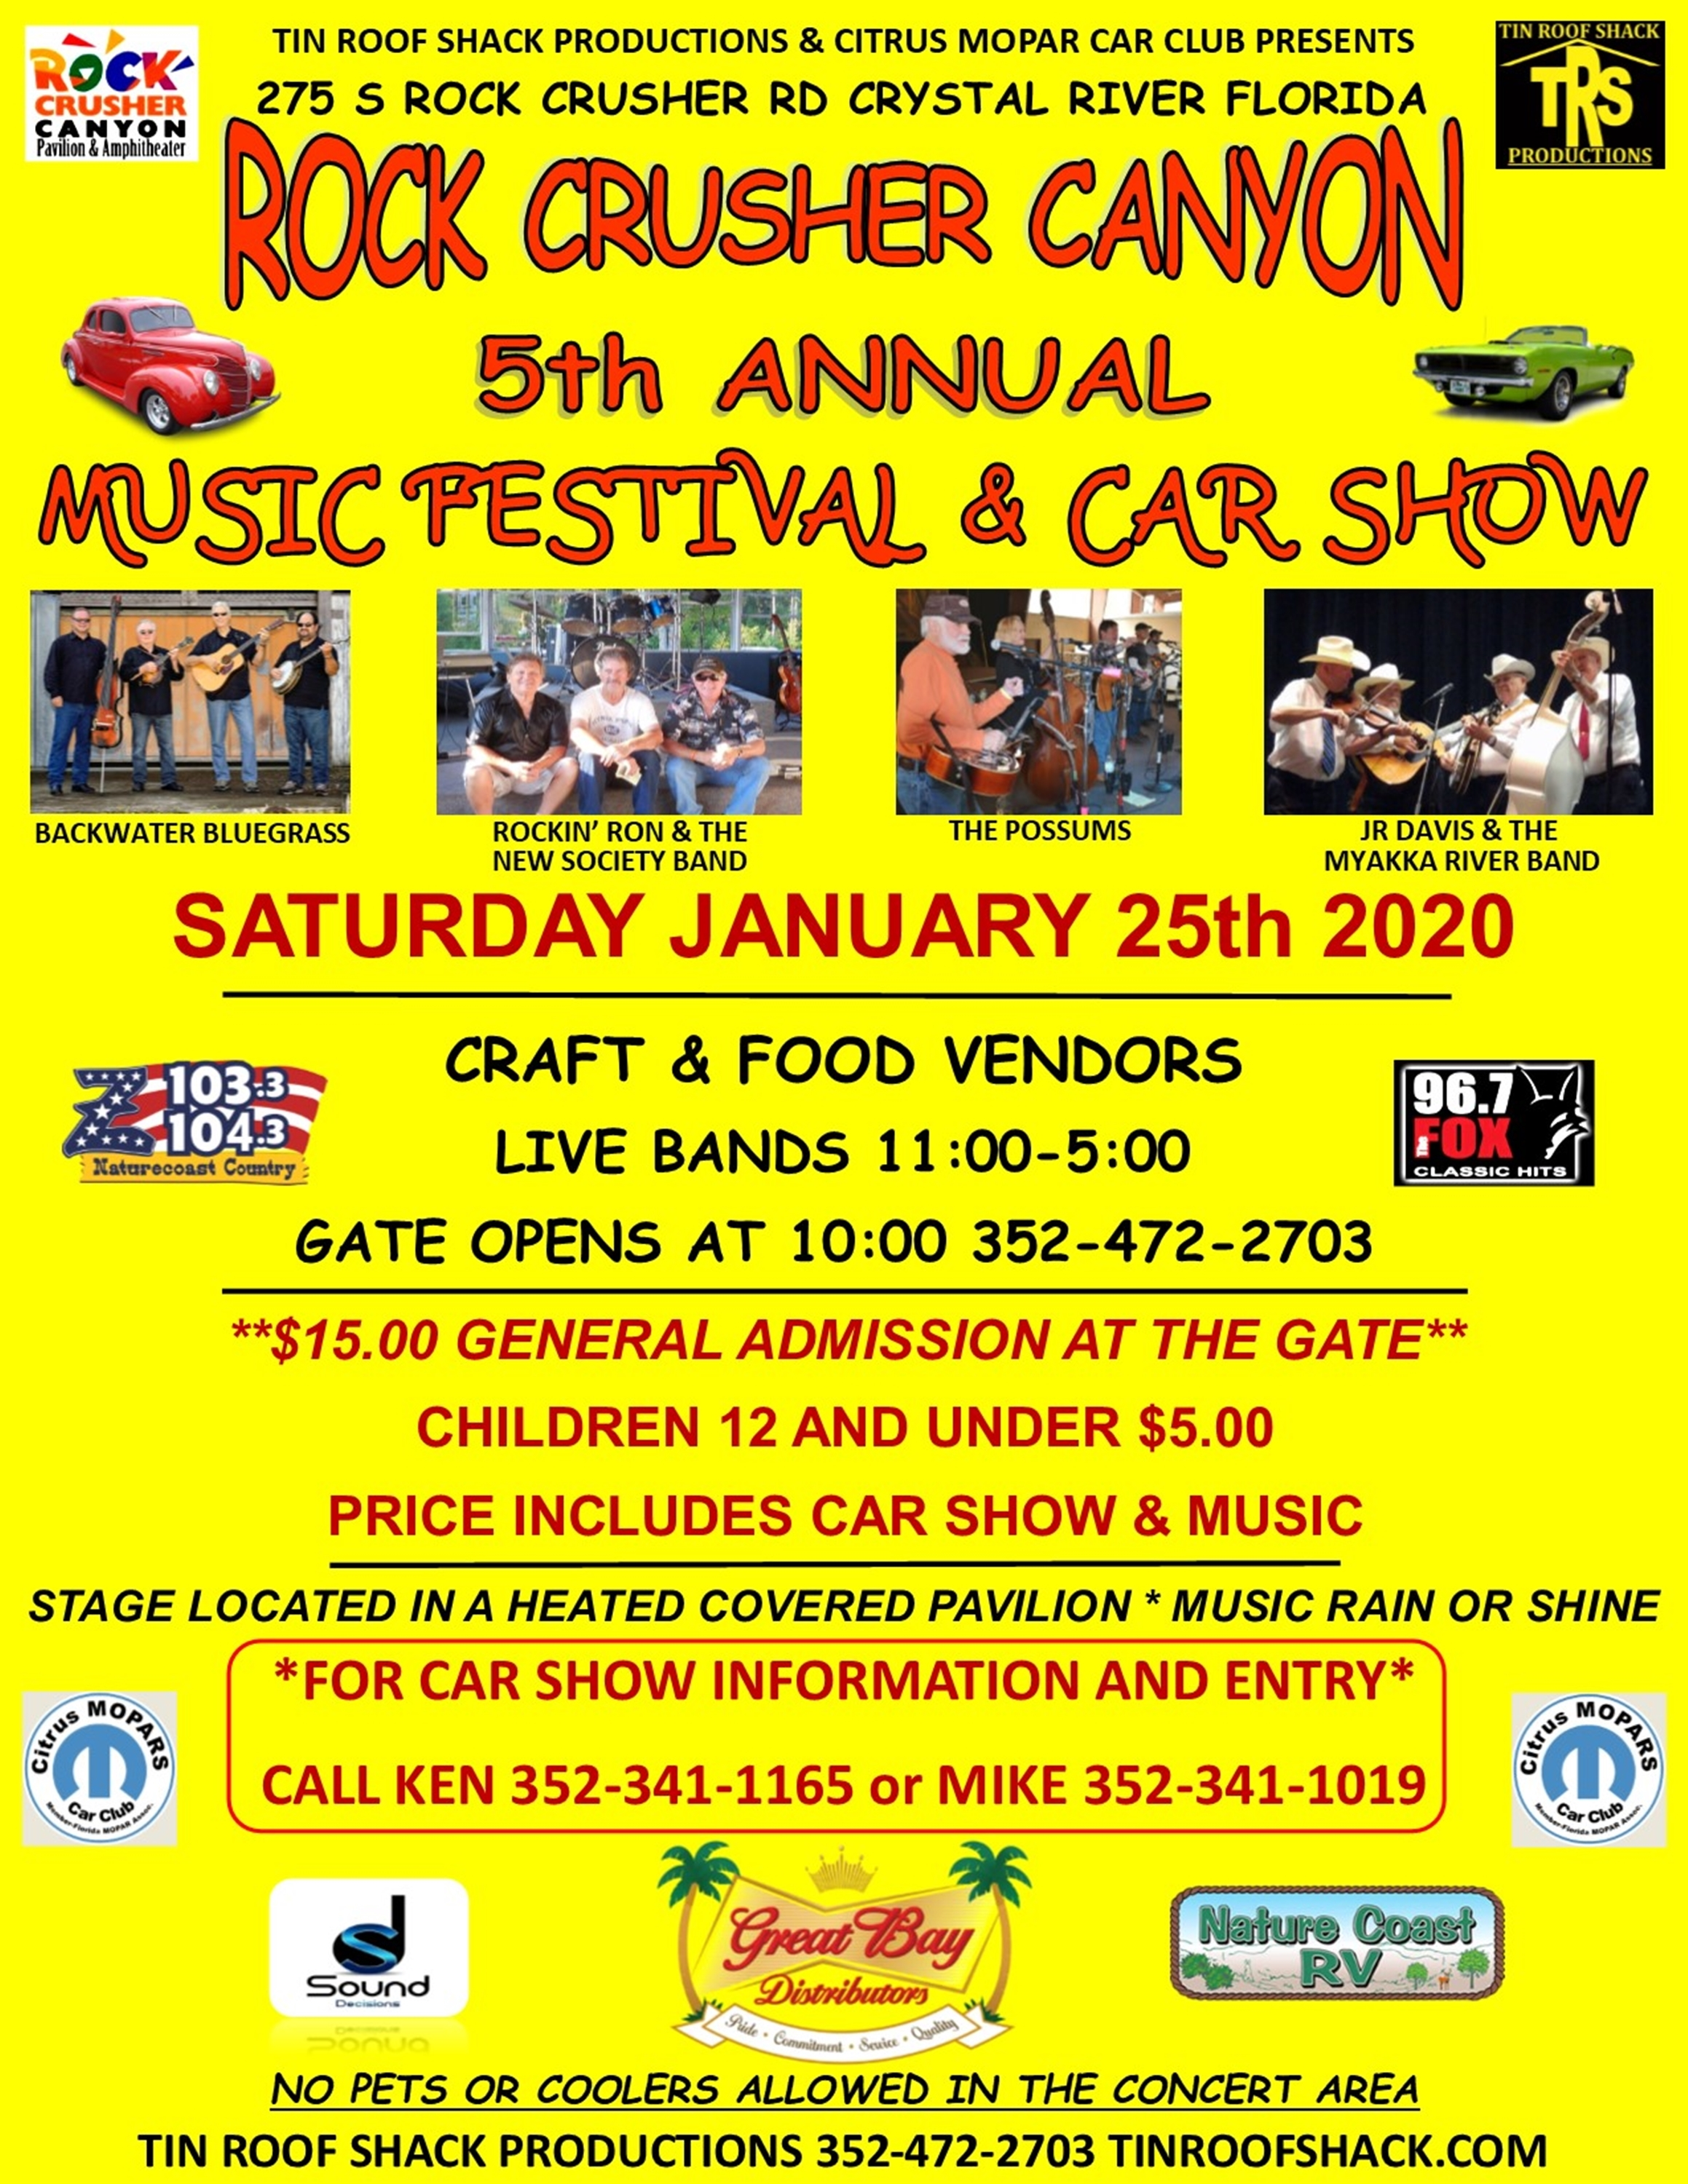 Music Festival and Car Show at Rock Crusher Canyon